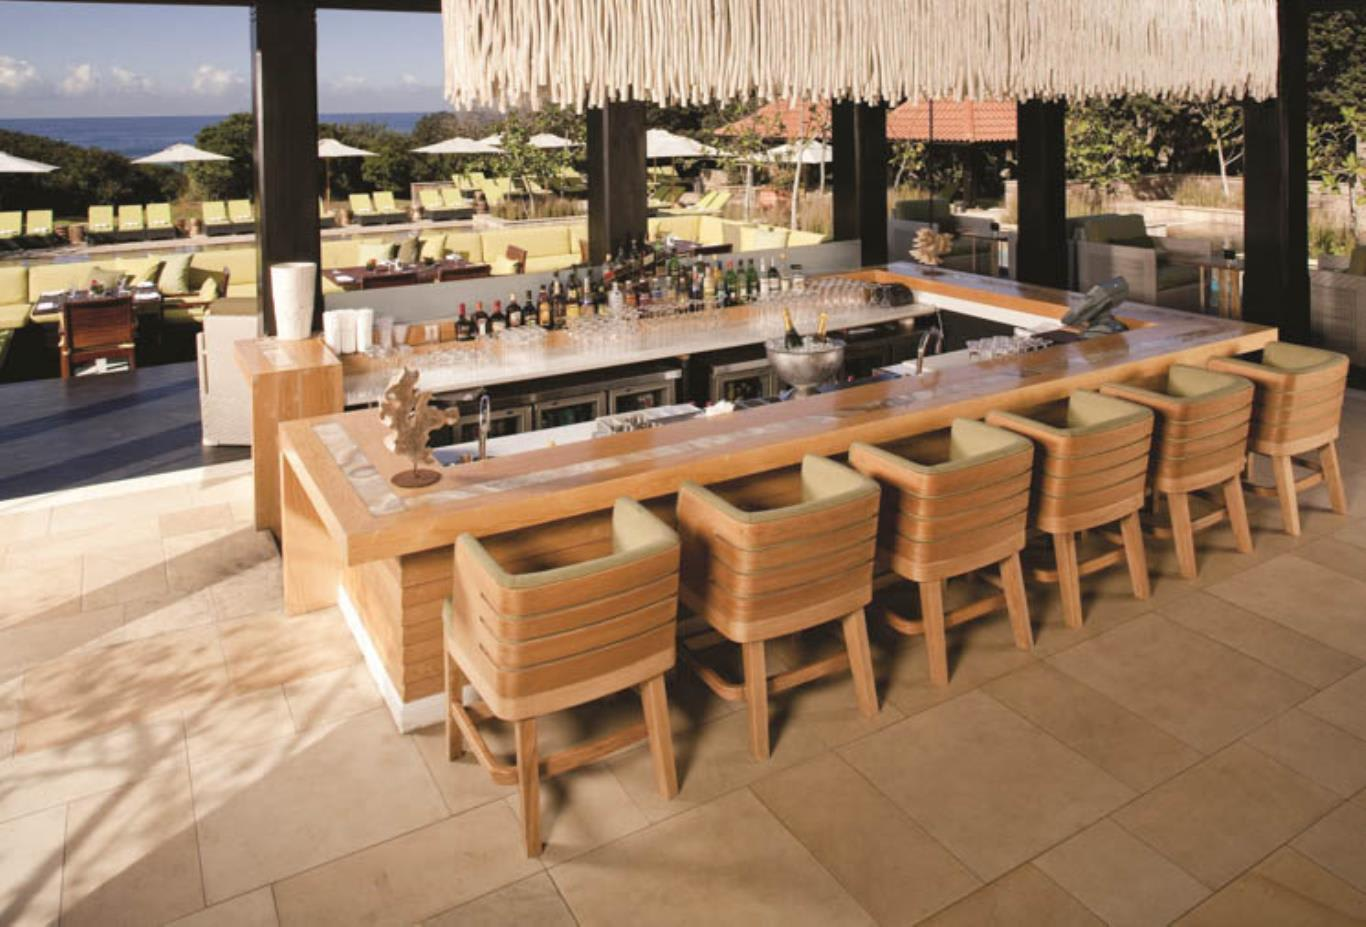 Makhaza Bar at Beach Club interior seating